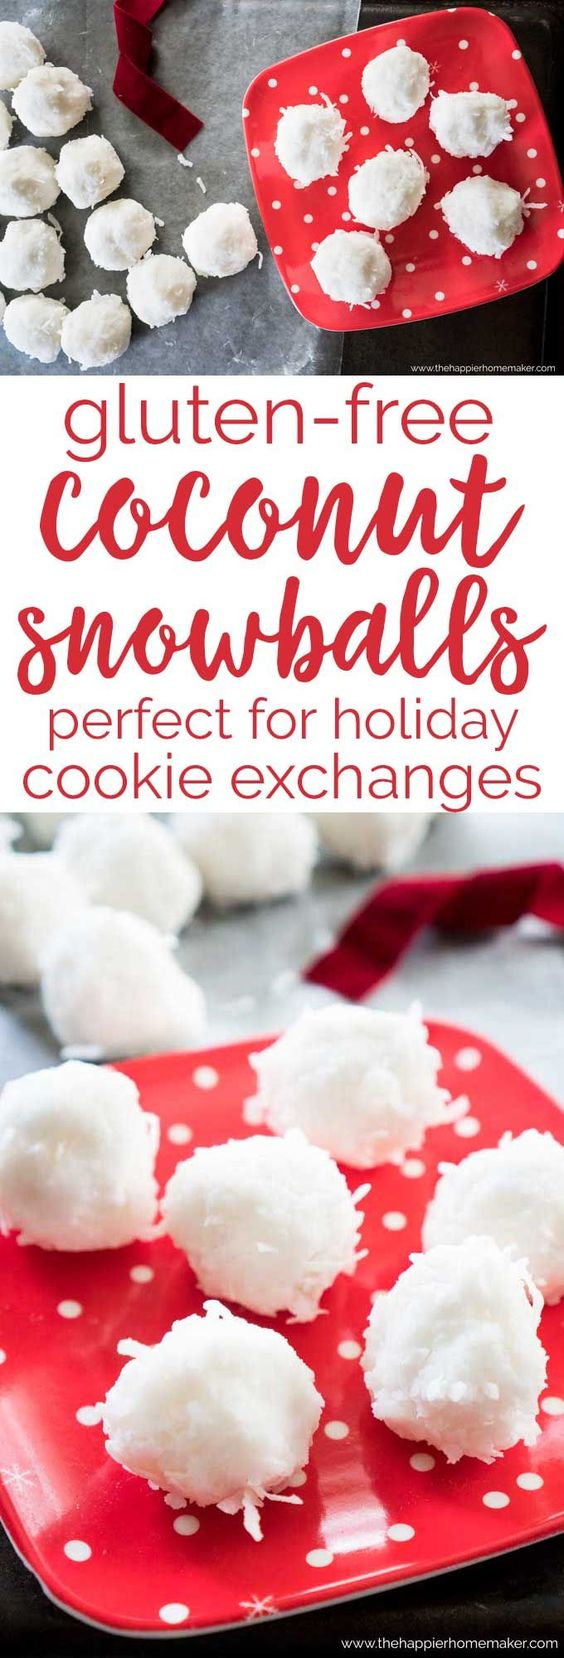 Gluten free Coconut Snowballs are the perfect dessert recipe to take to holiday gift exchanges. Only 3 ingredients and allergy & intolerance friendly. #glutenfree #recipe #dessert